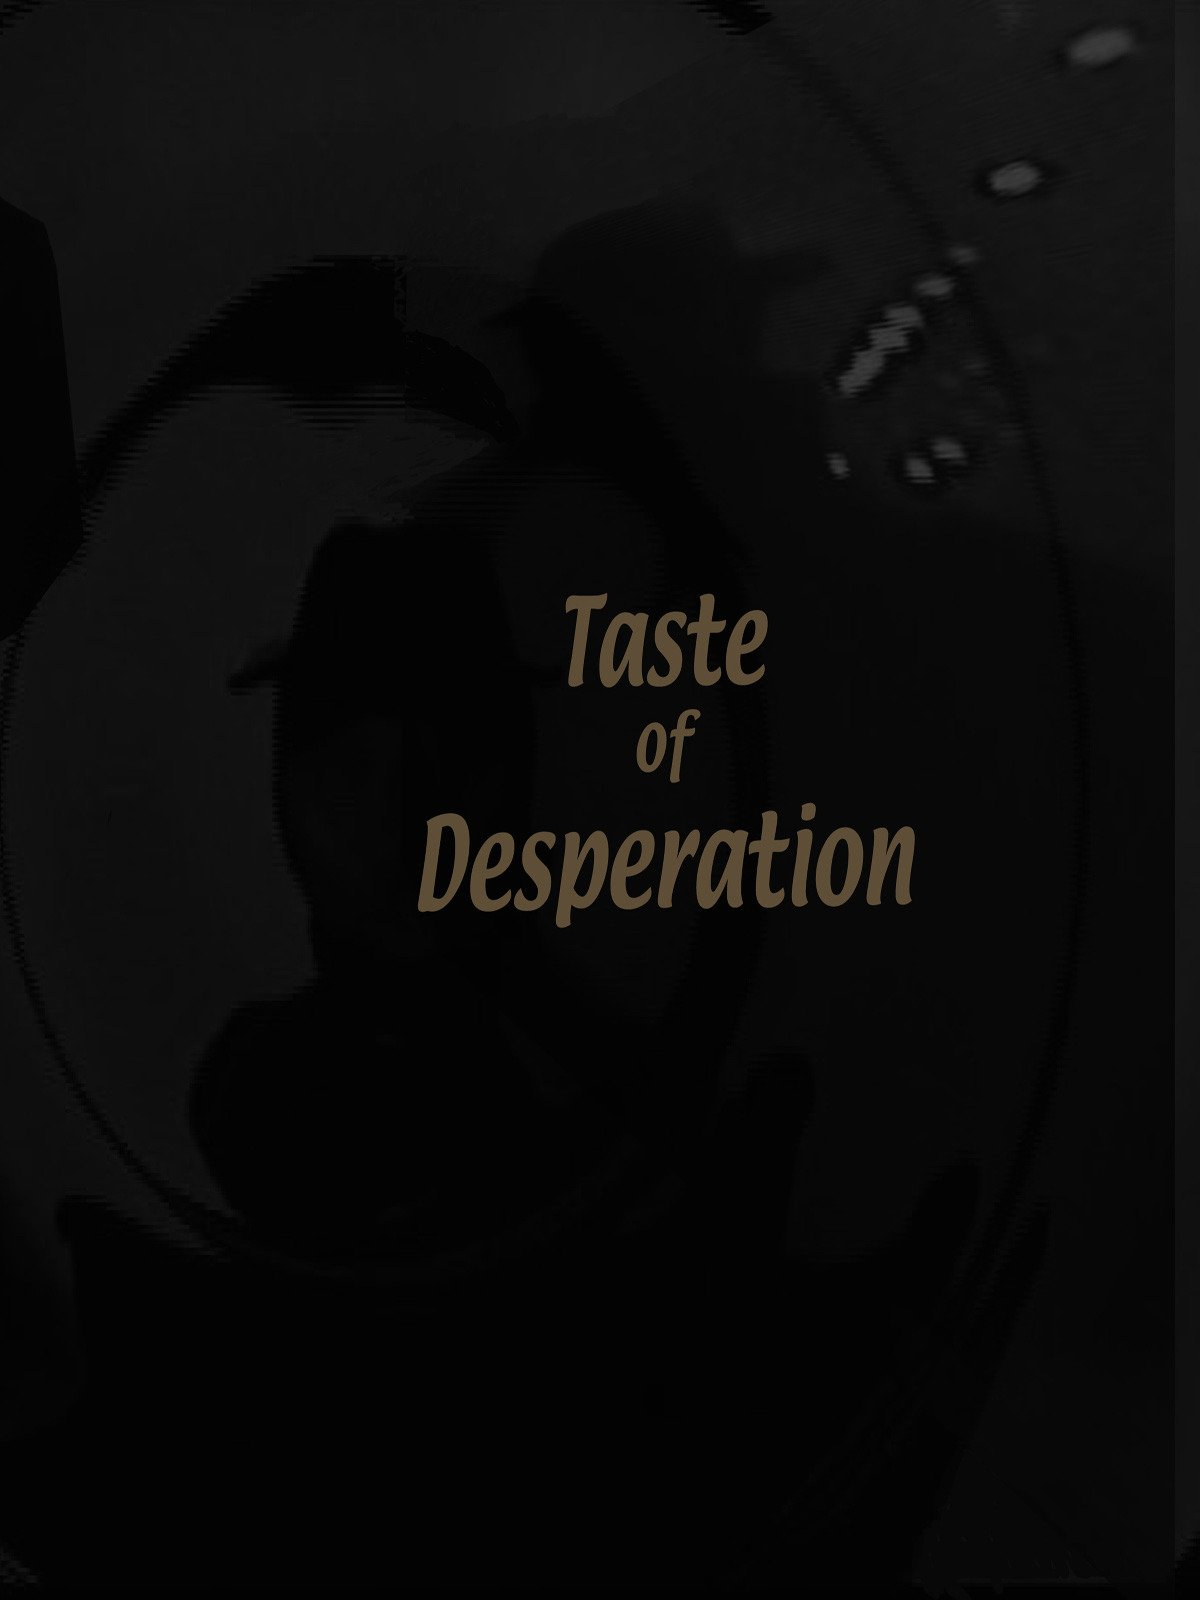 Taste of Desperation